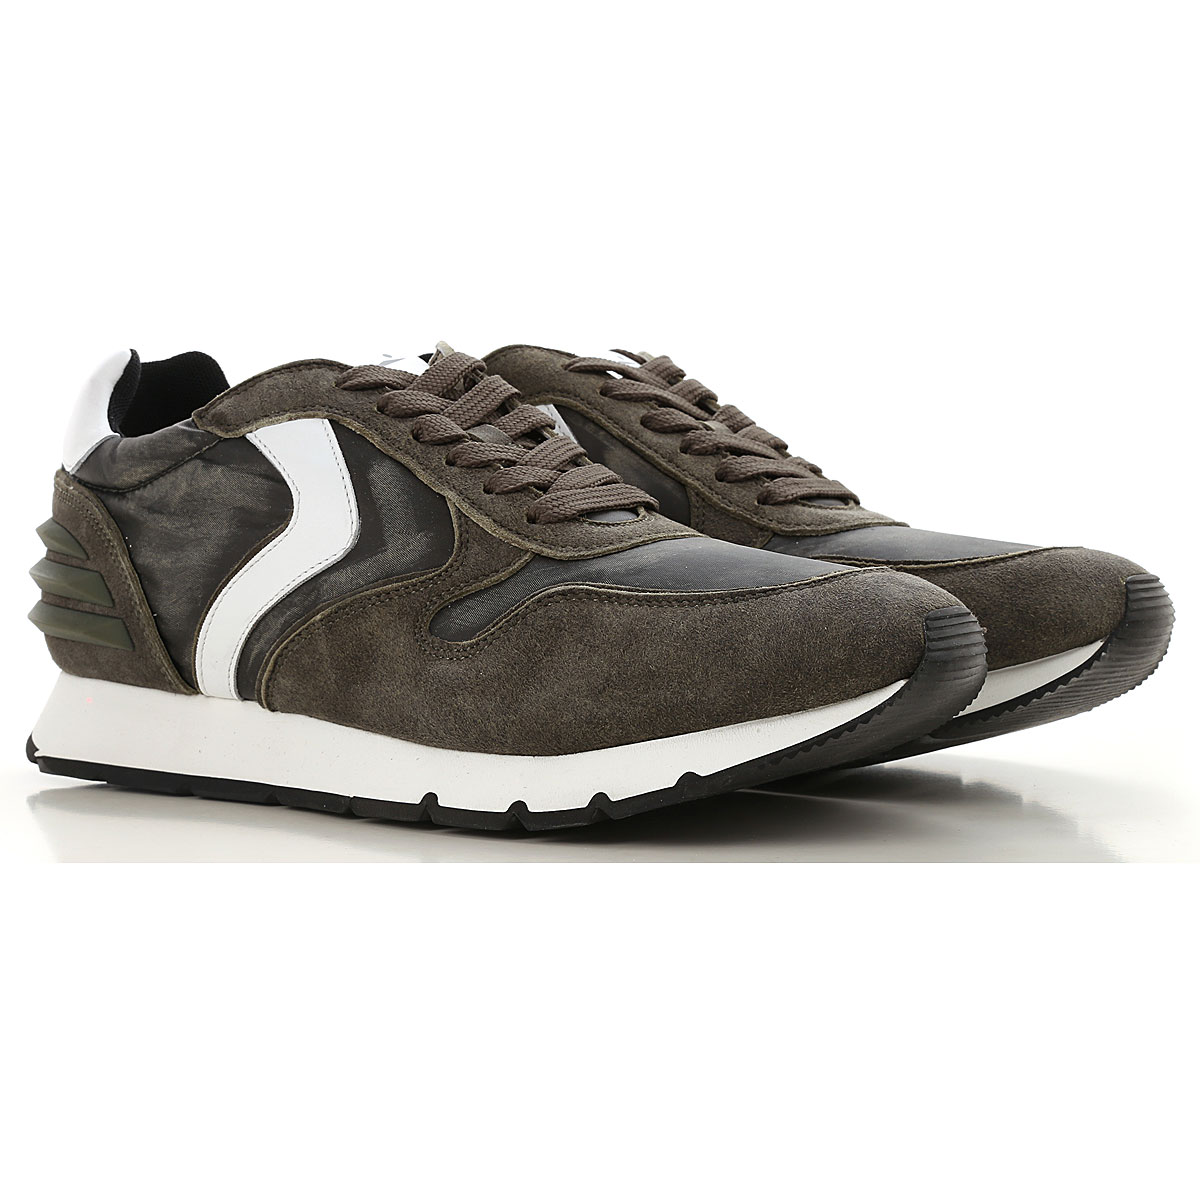 Image of Voile Blanche Sneakers for Men, Dark Green, Suede leather, 2017, 10 10.5 11.5 7.5 8 9